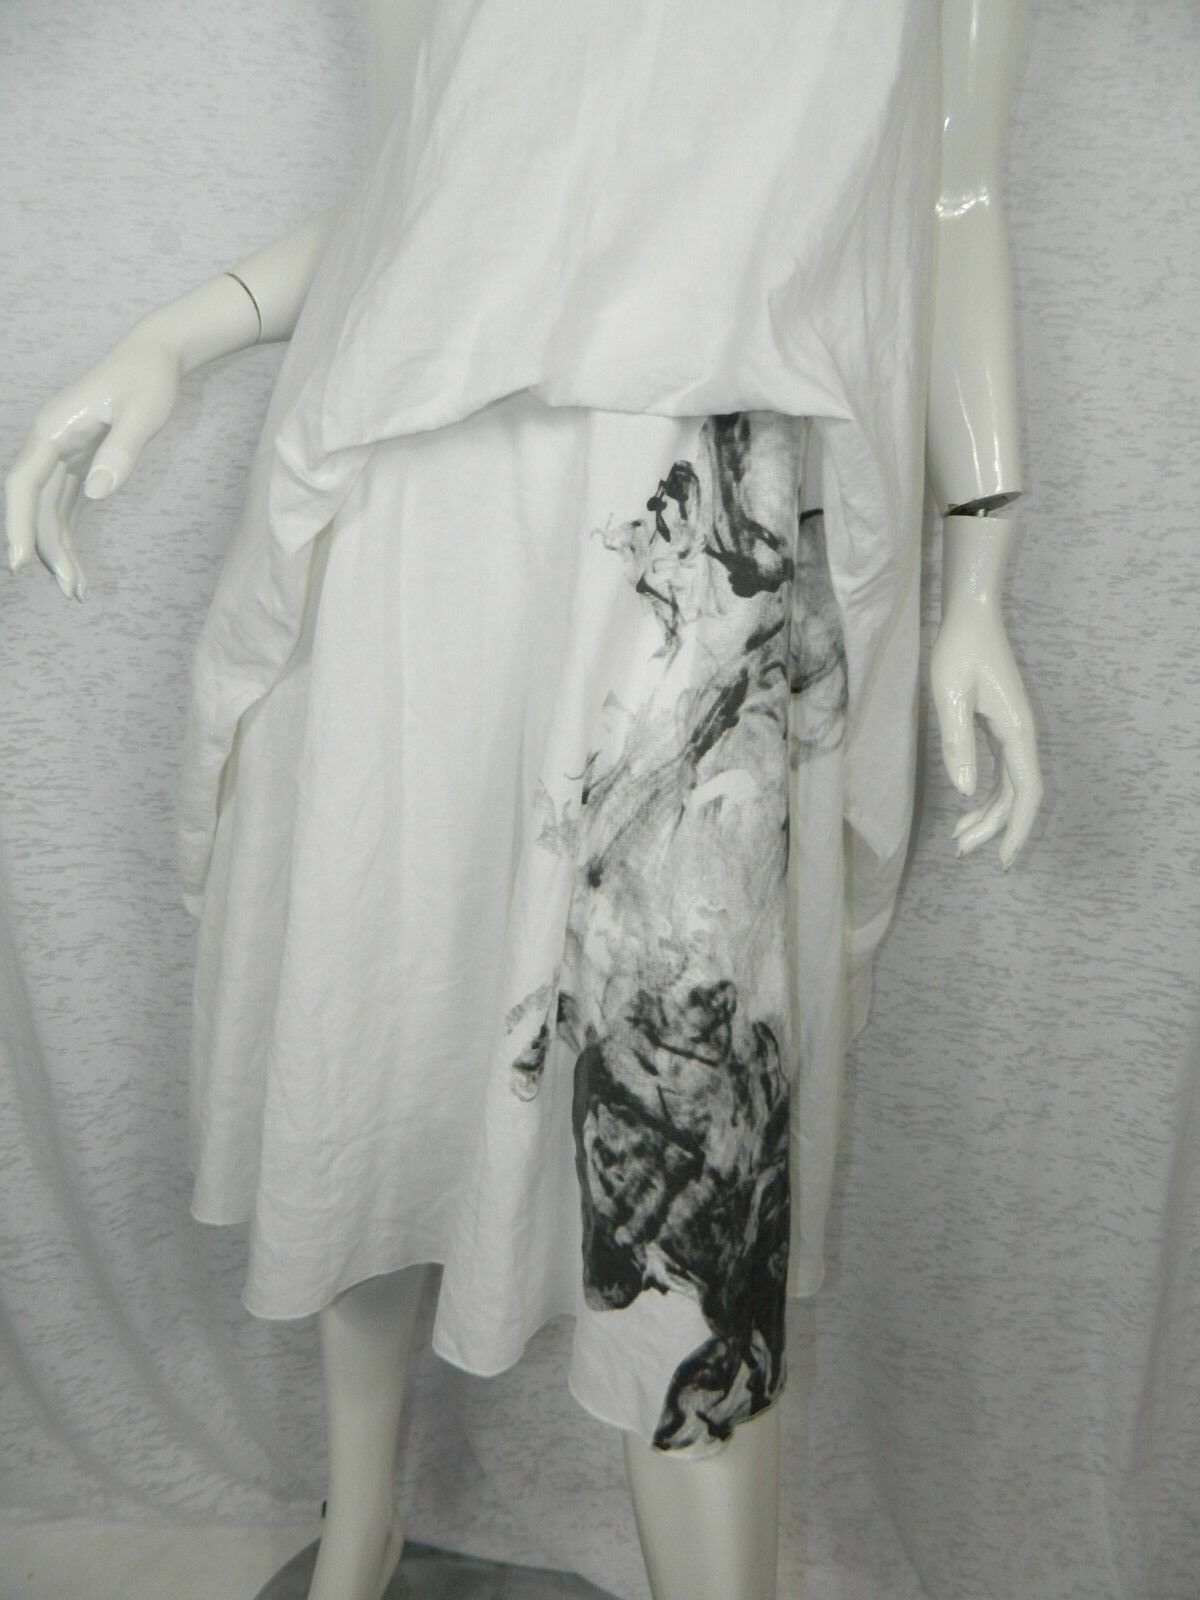 Artka Crazy in Life Dress Dress Dress White Boho Cotton Linen Maxi Floral Dress Medium fd7dc3